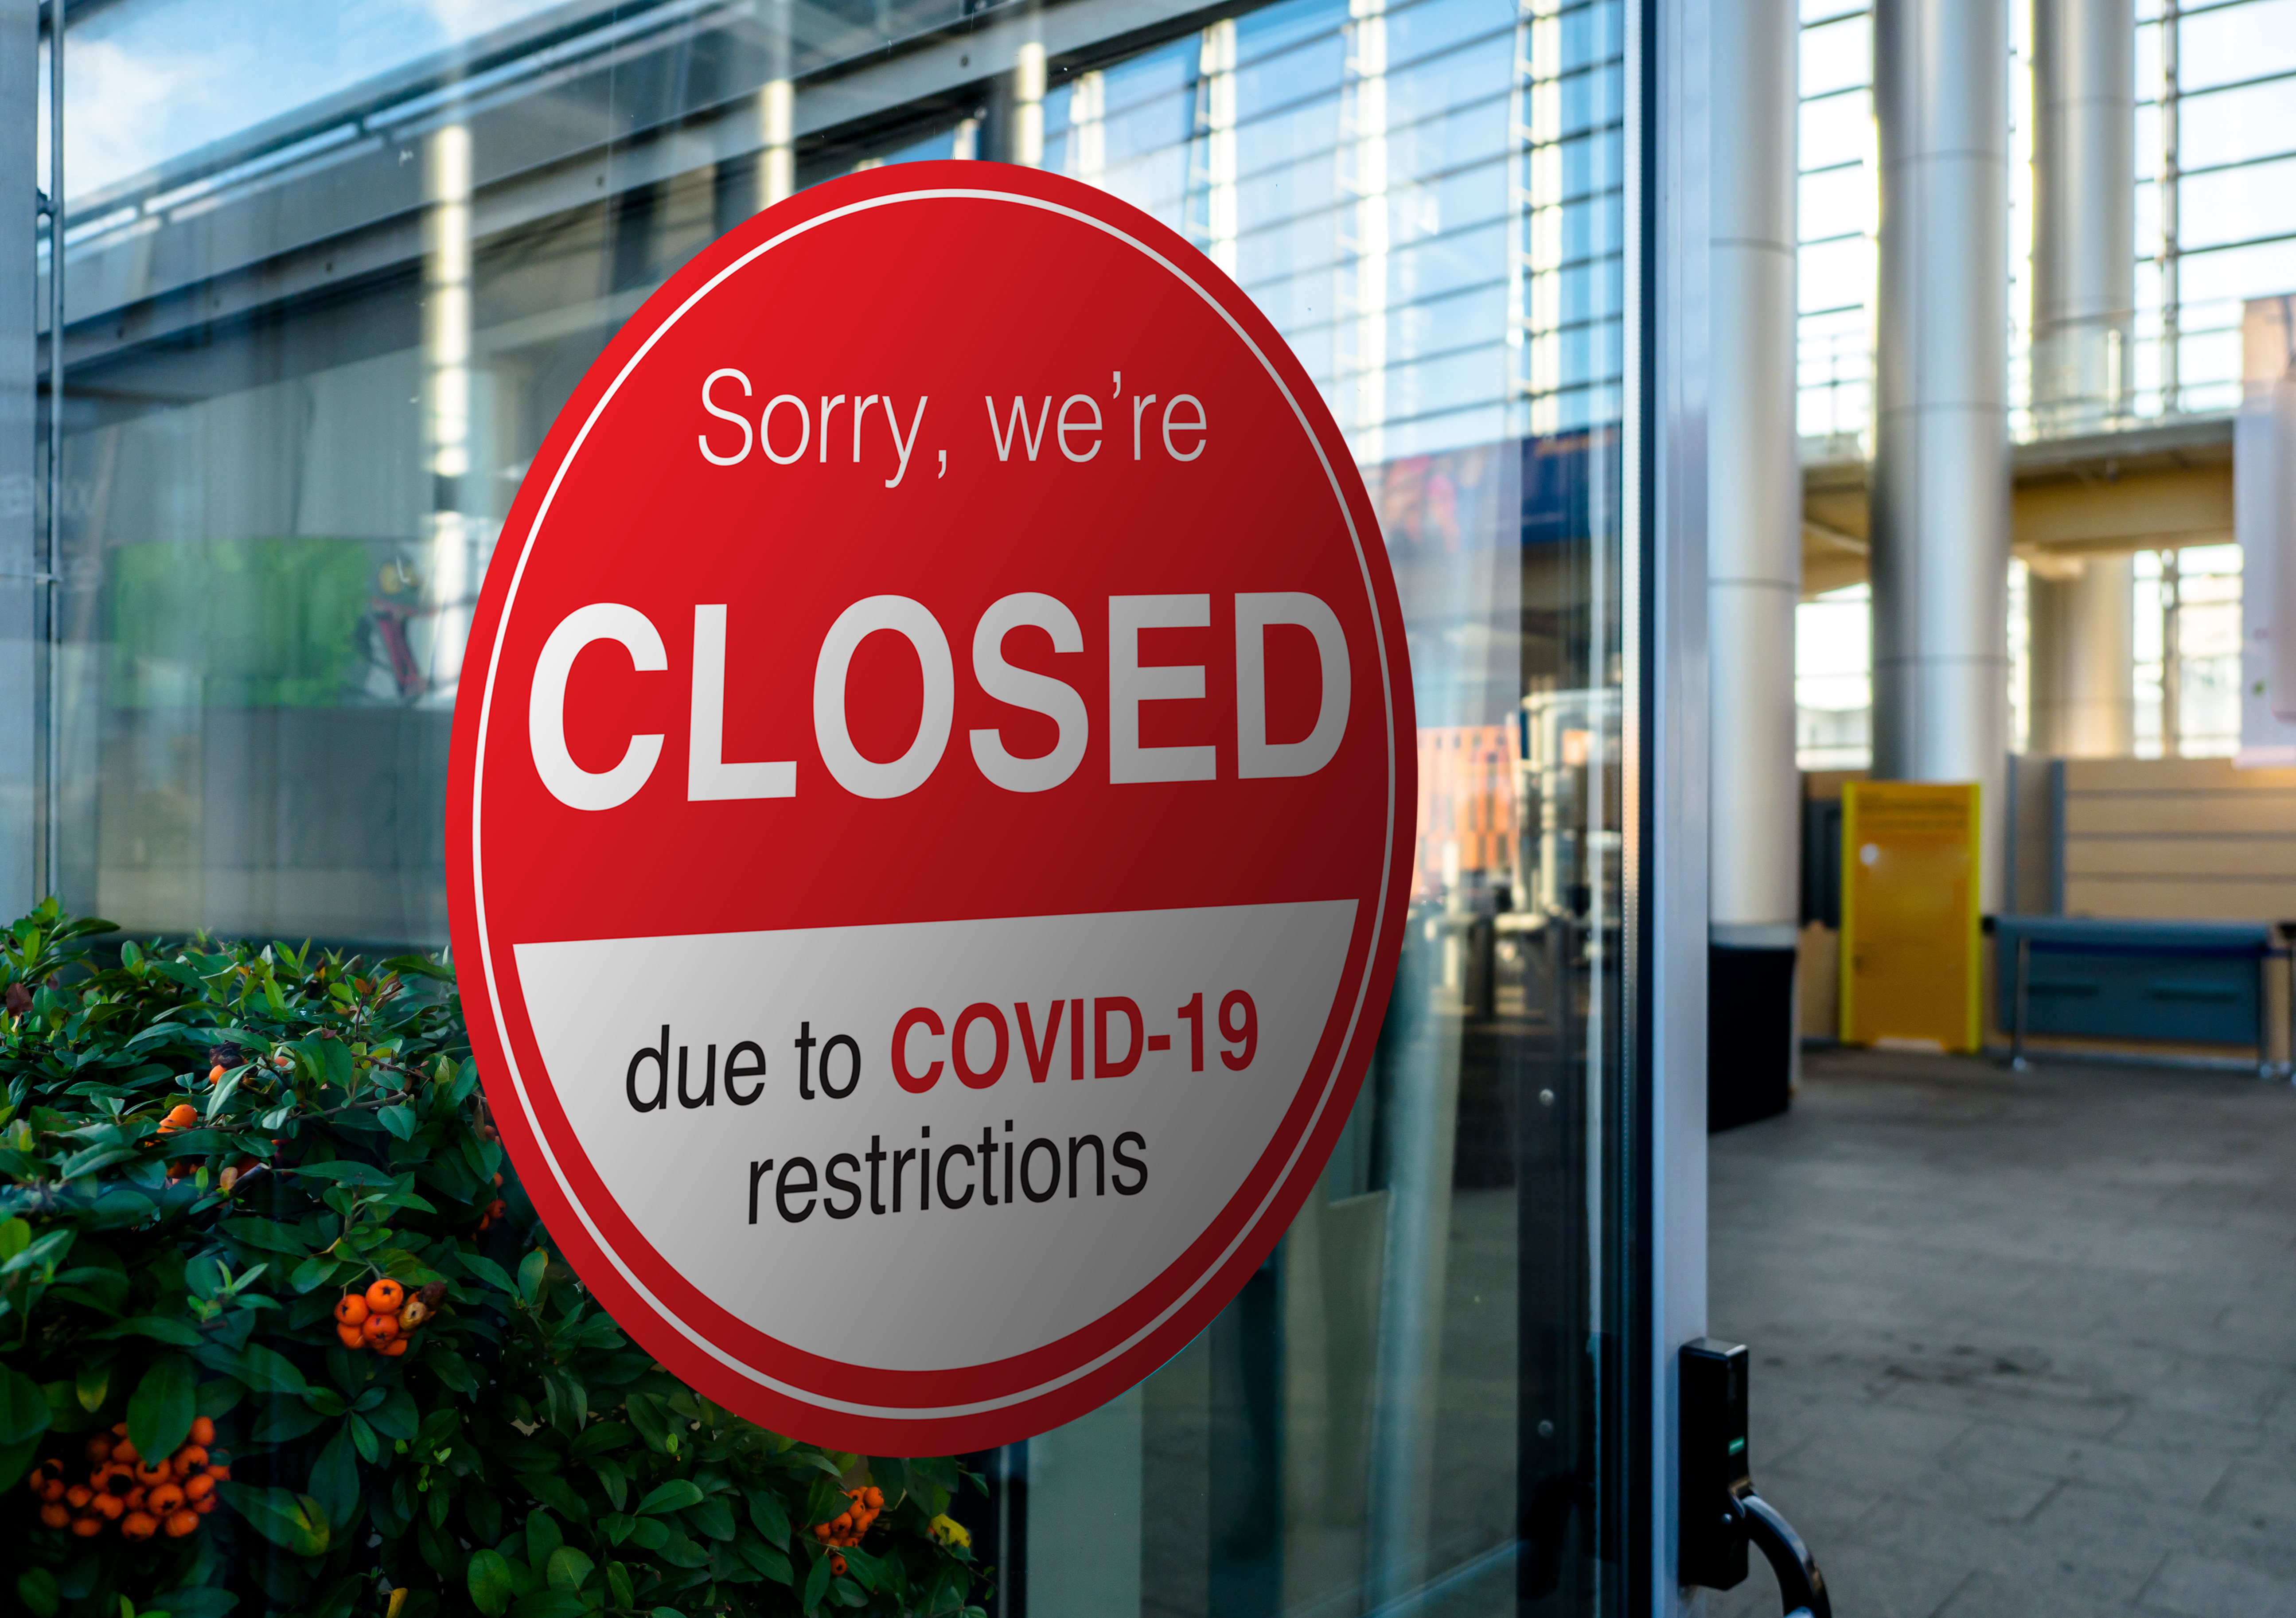 Business closed due to COVID-19 restrictions